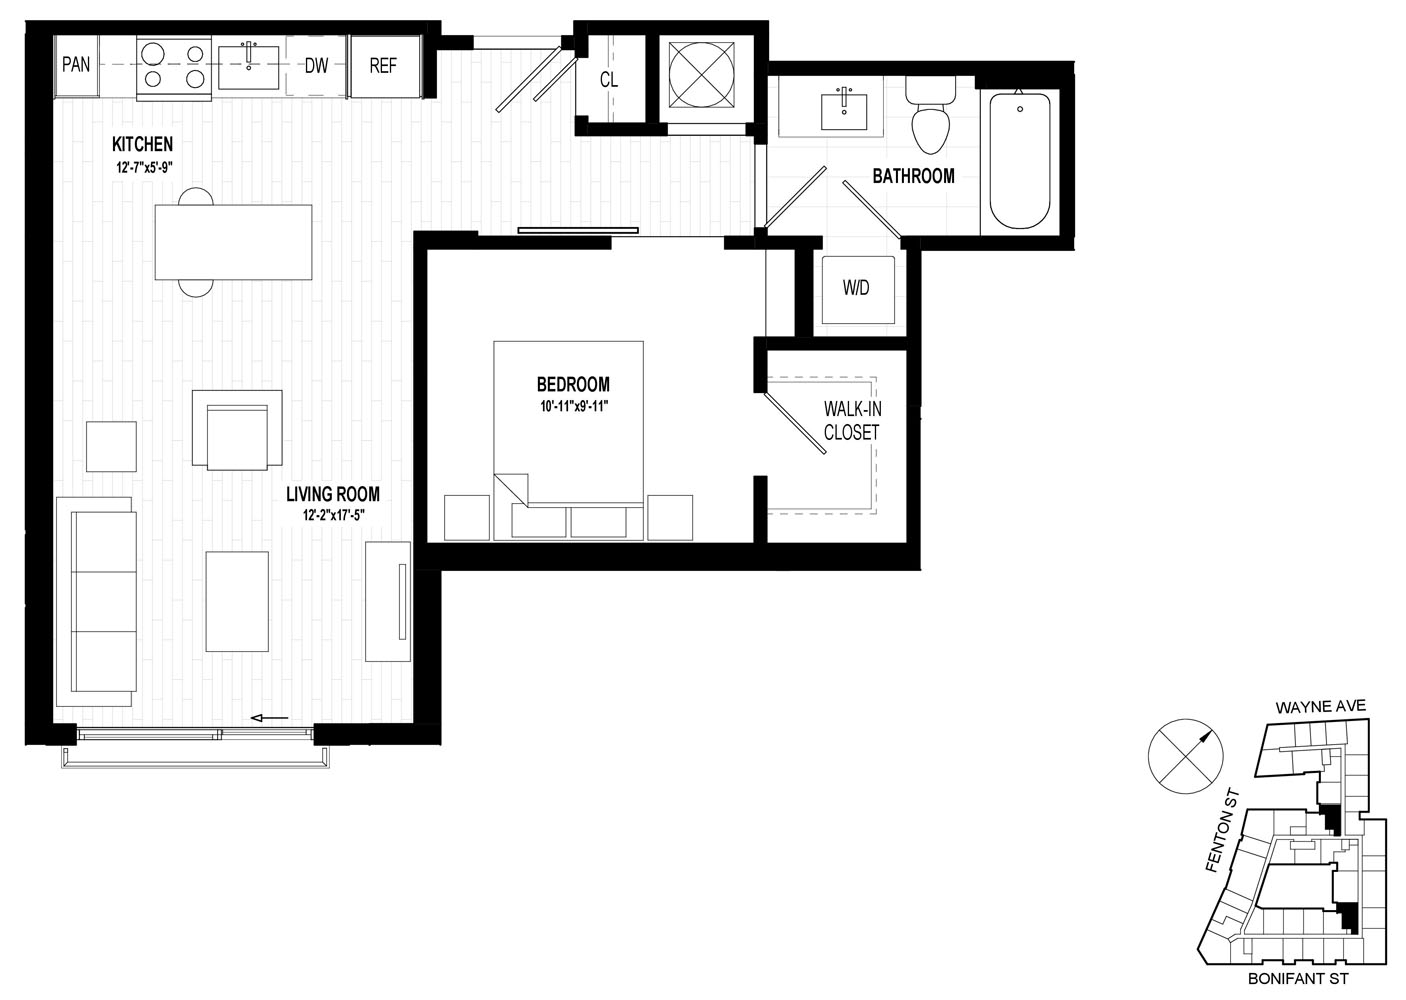 P0578887 761aa10 central a03 641 2 floorplan